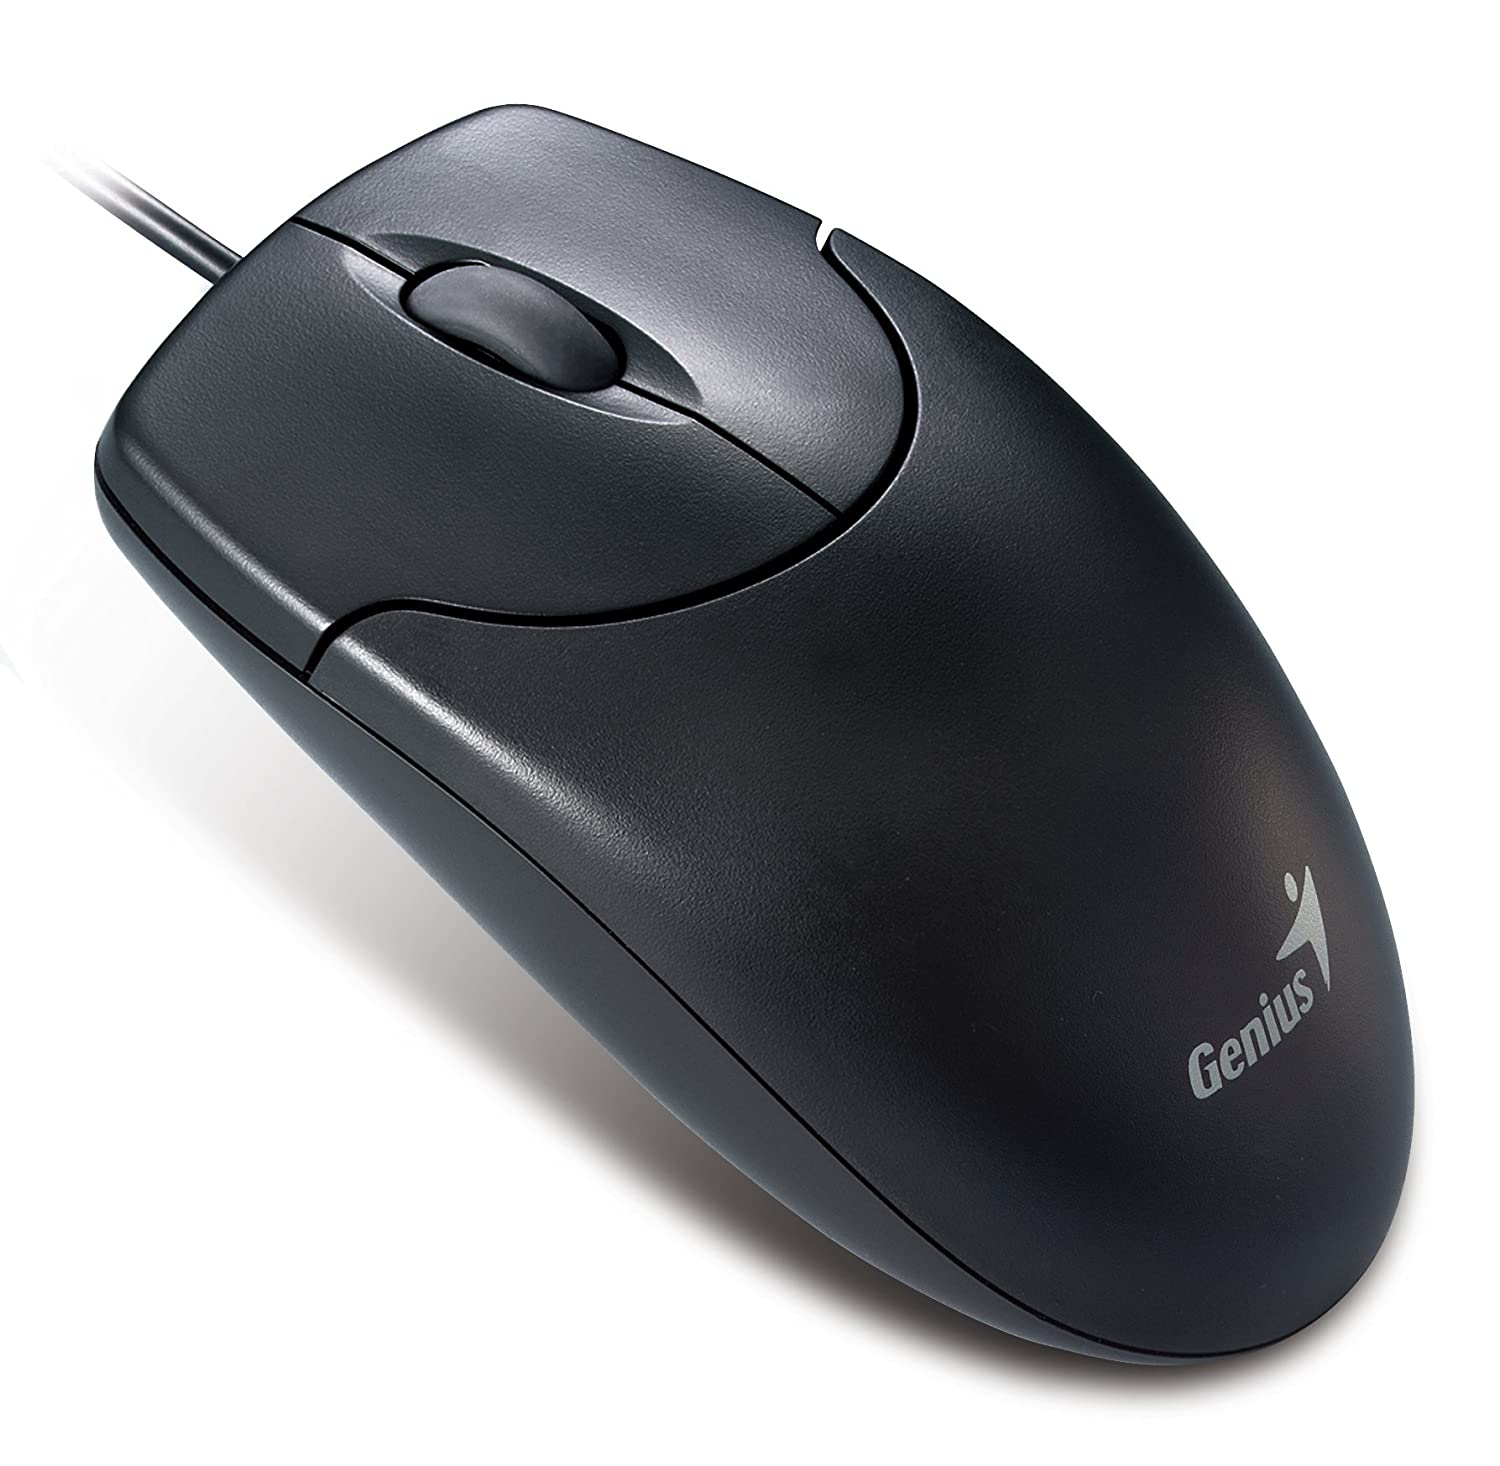 GENIUS NETSCROLL MOUSE DRIVER FOR PC